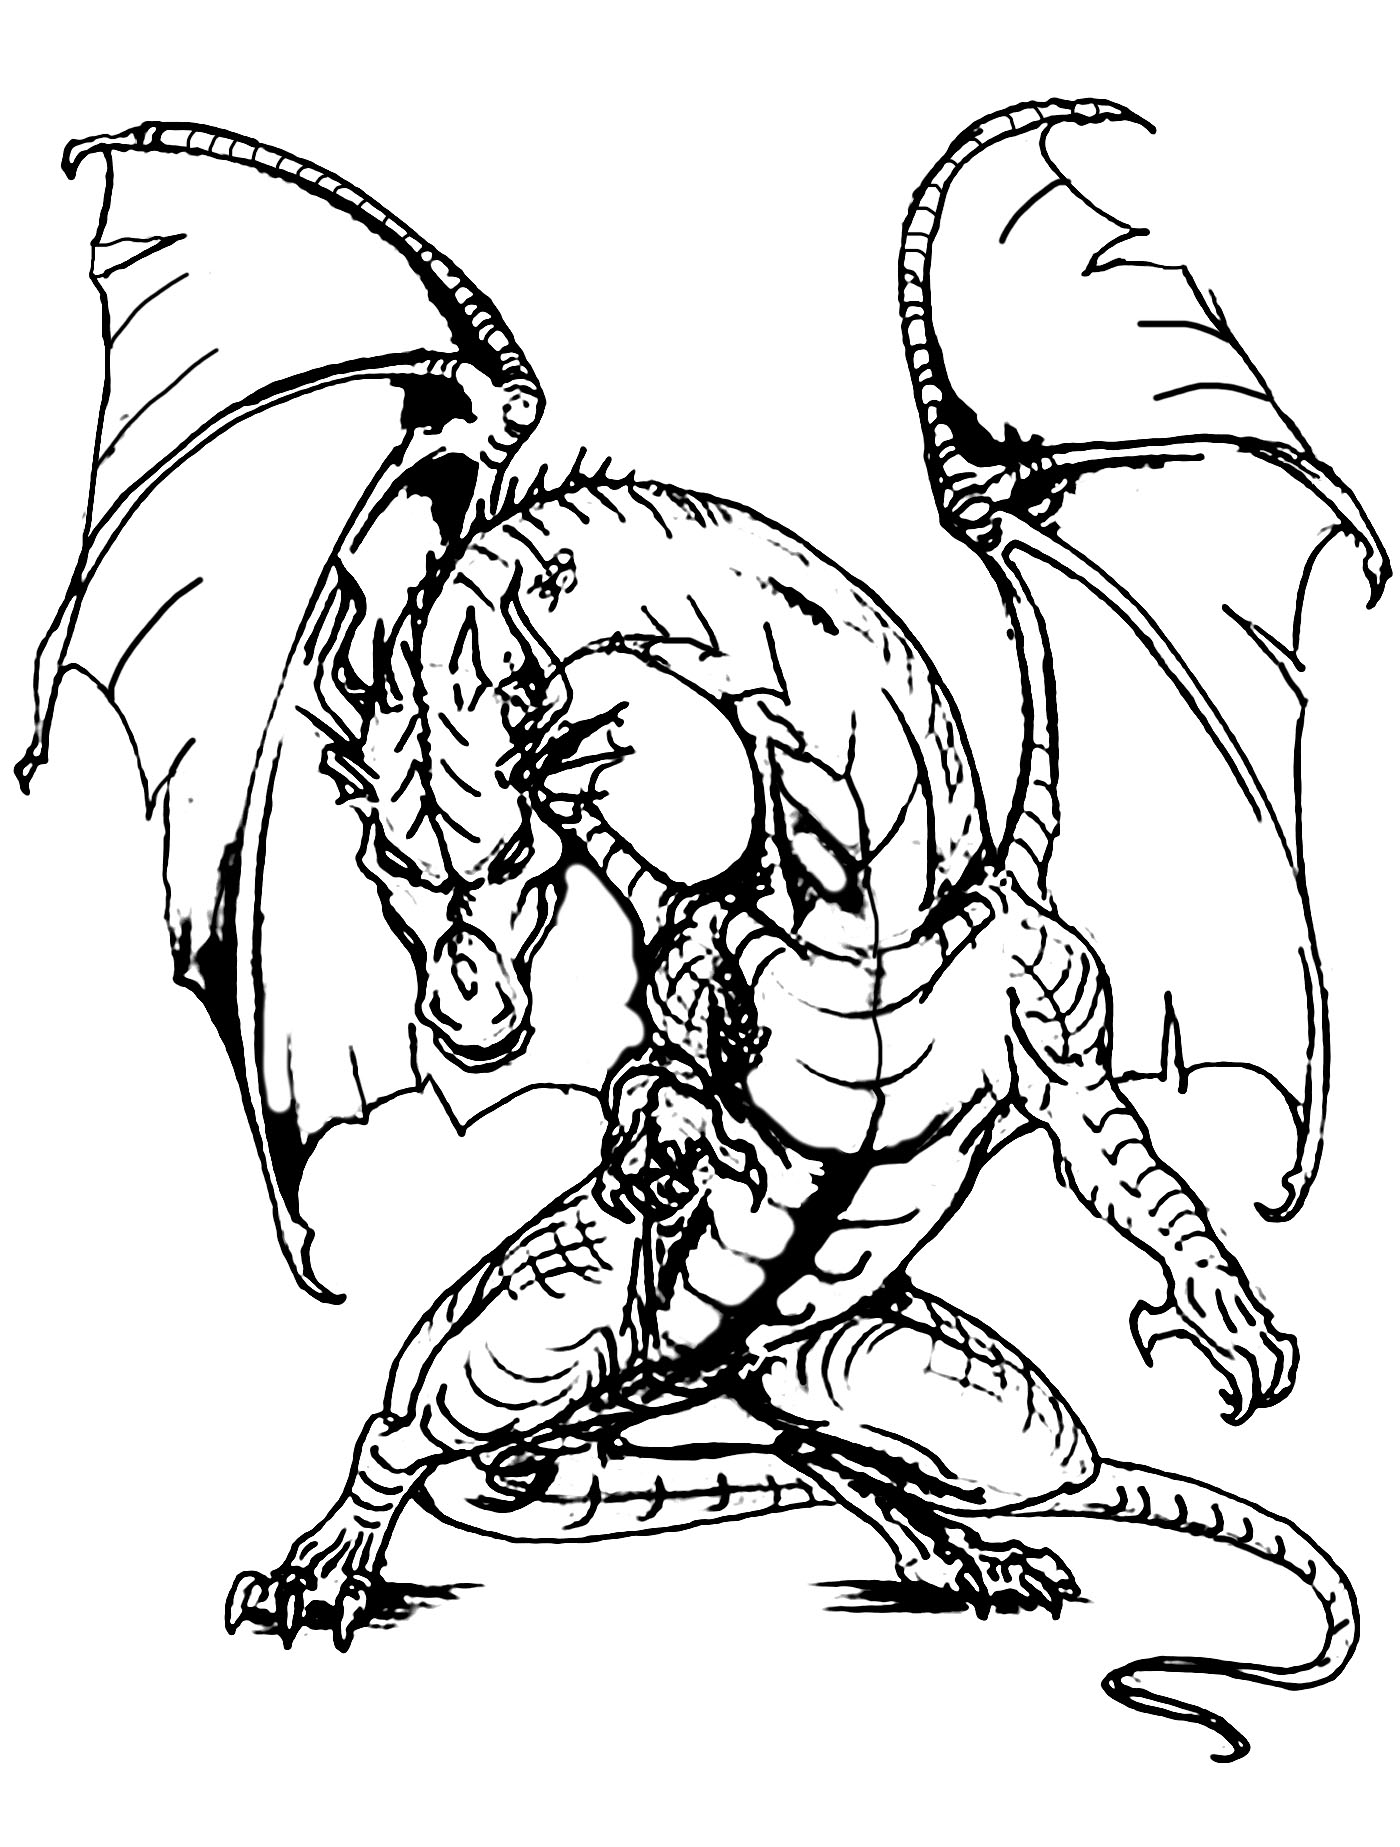 Giant dragon - Dragons Adult Coloring Pages